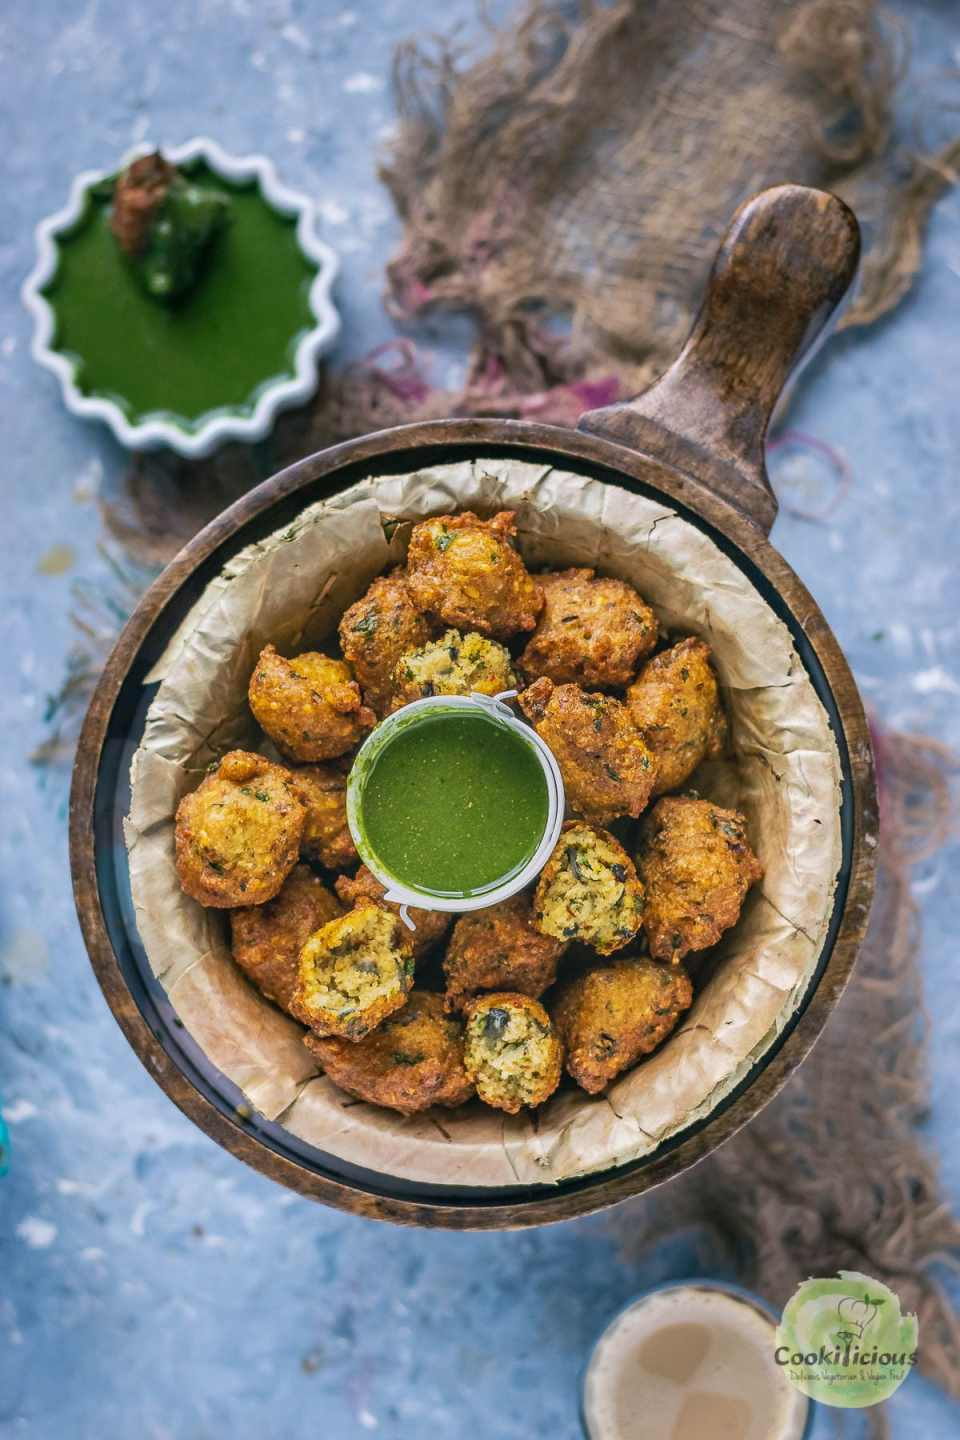 Crispy Moong Dal Pakora which is one of the easy vegan appetizers is placed in a round platter with a bowl of chutney in the middle and next to it